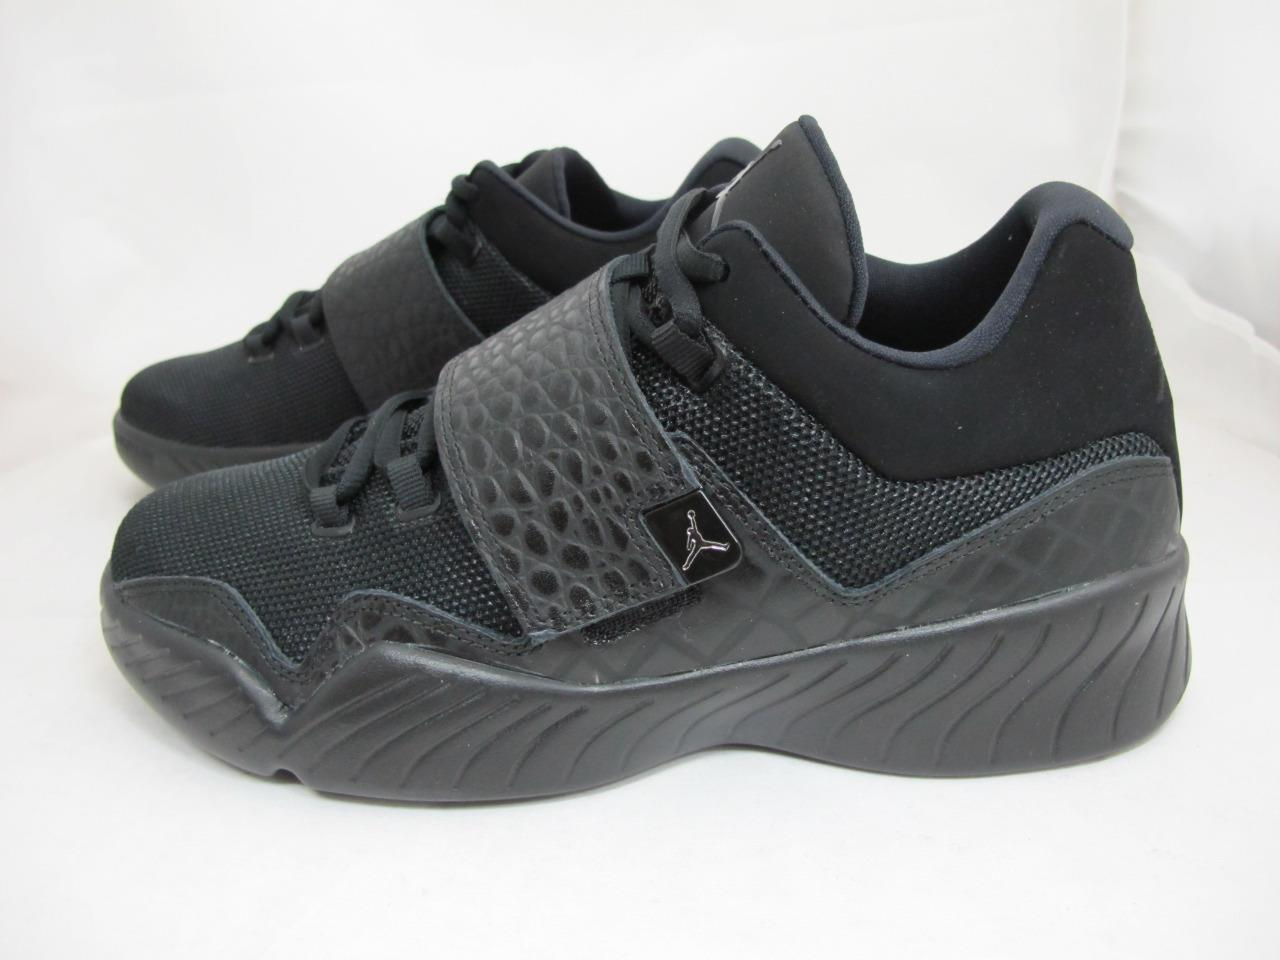 Man's/Woman's NEW MEN'S NIKE jordan j23 854557-001 Reputation first buy Known for its beautiful quality